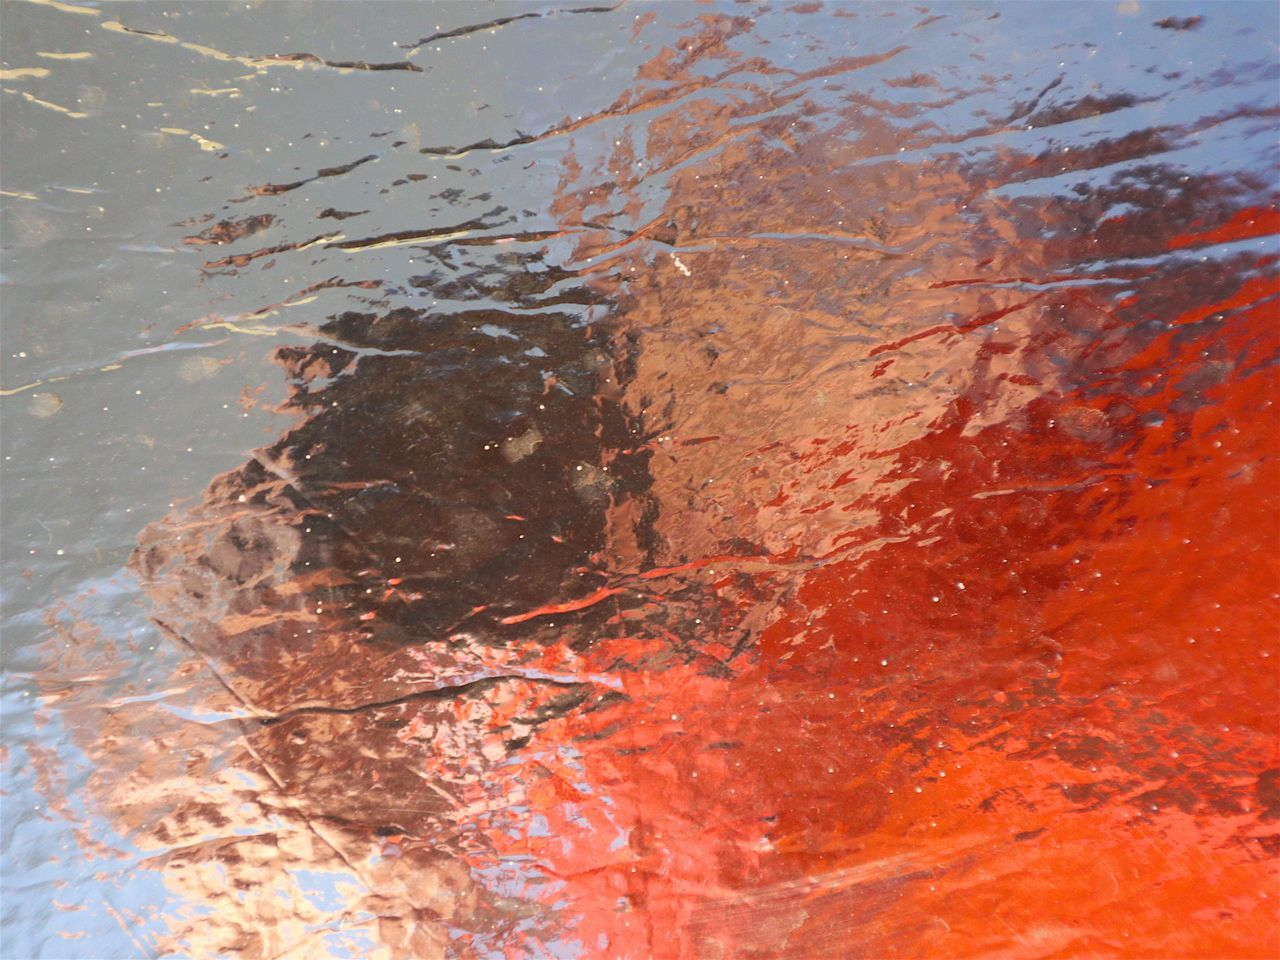 Abstract Art Abstract Photography Art Photography Blurred Color Contrasts Nature No People Painting With Light Photo Art PHOTOIMPRESSIONISM Ripples Water